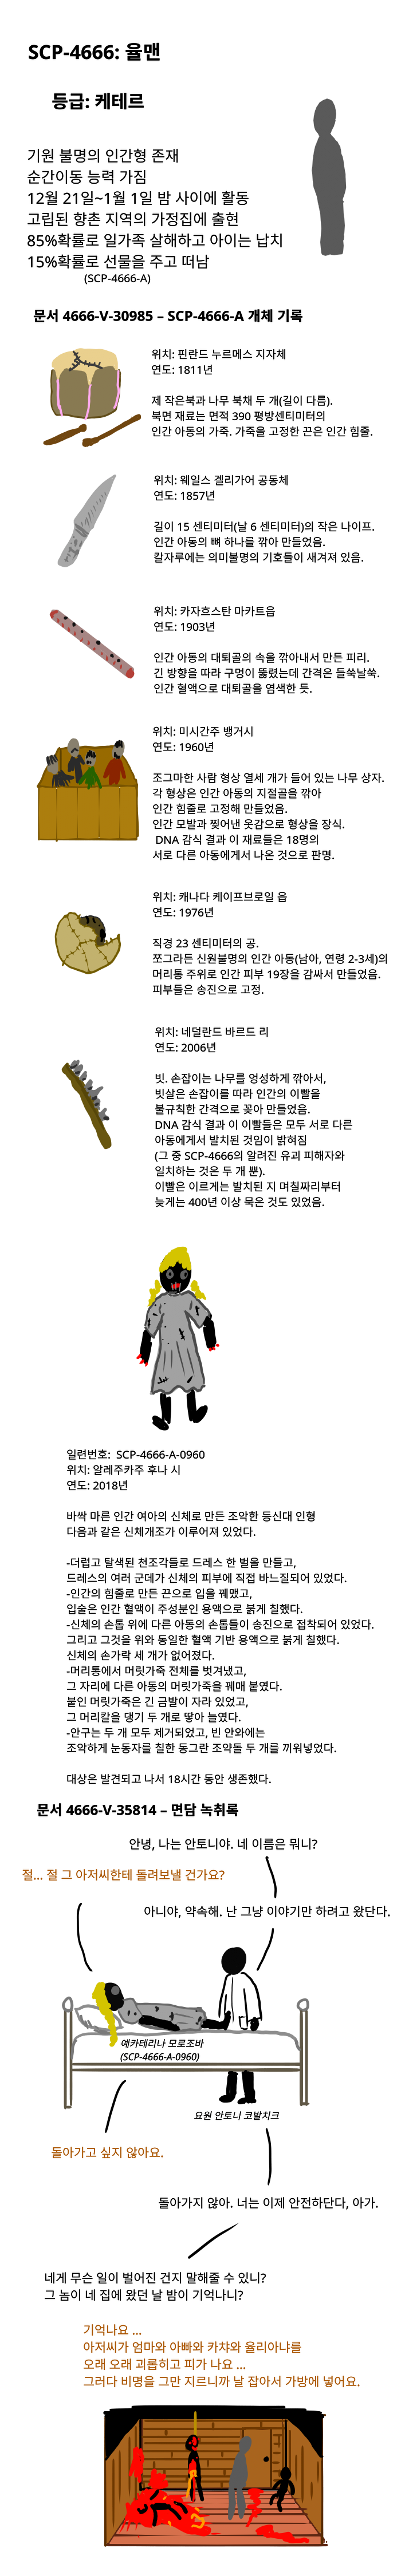 1.PNG [SCP재단/만화] SCP-4666 \